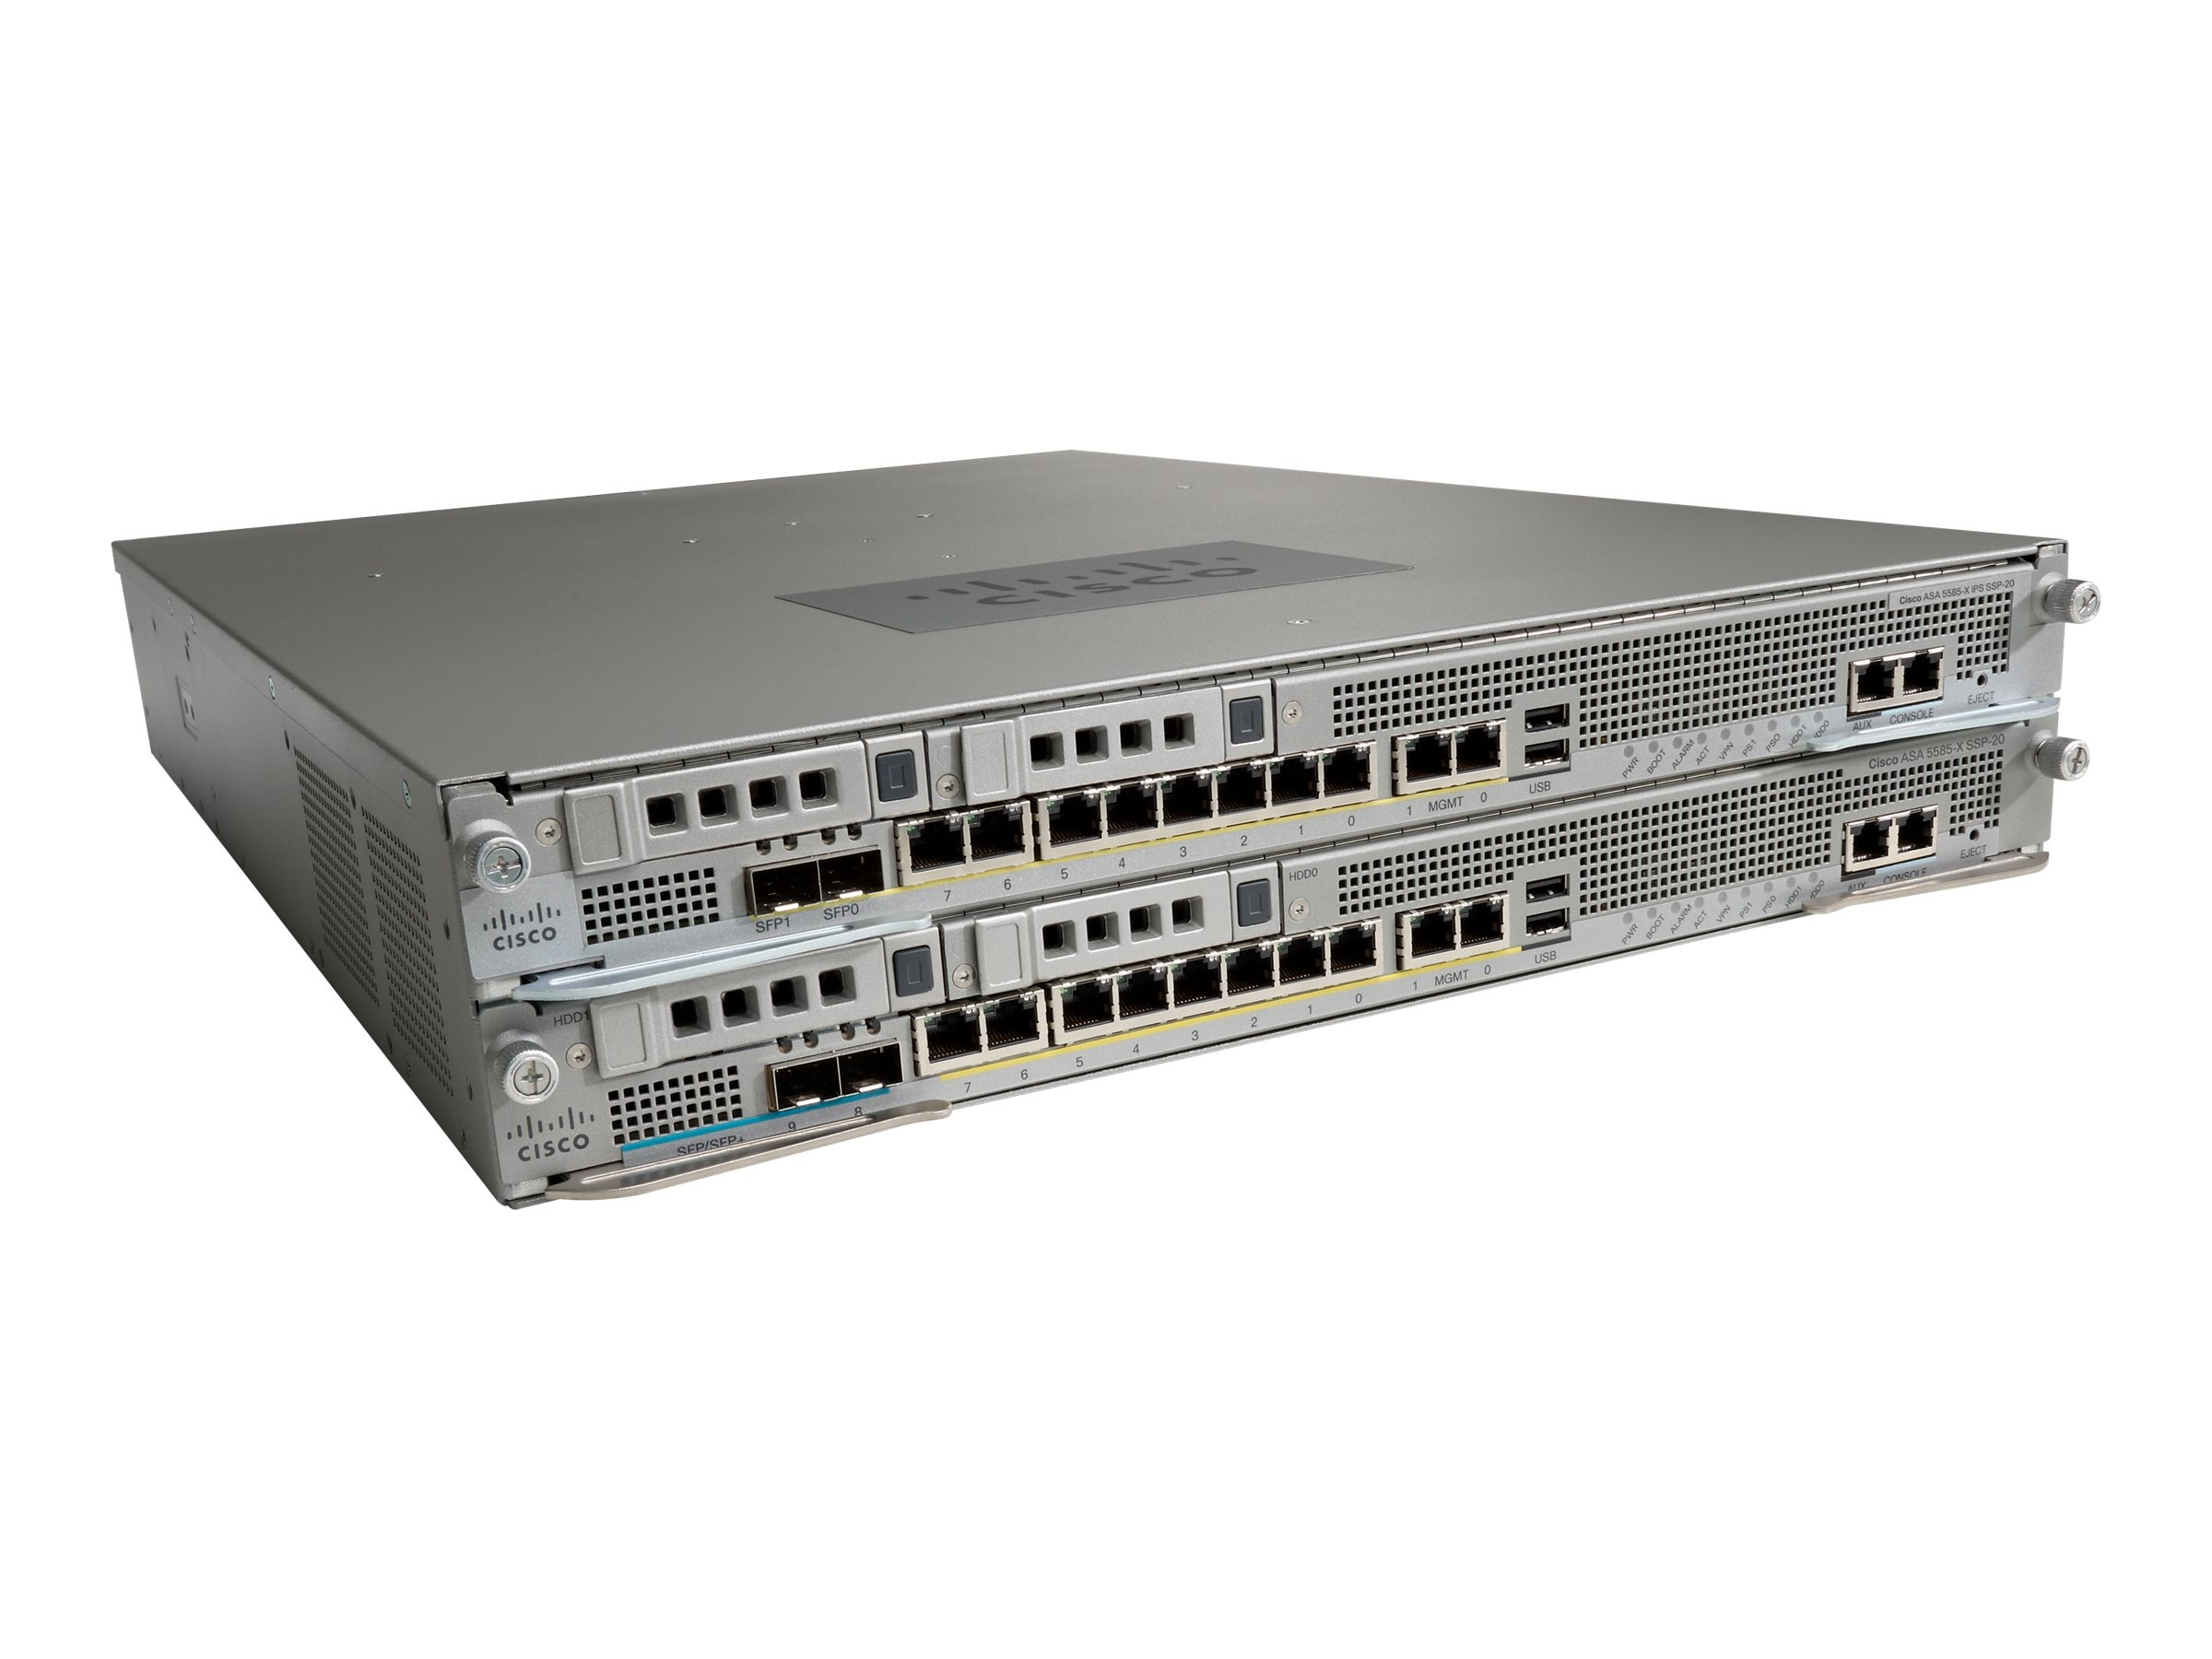 Cisco ASA5585-S10F10XK8 Image 1